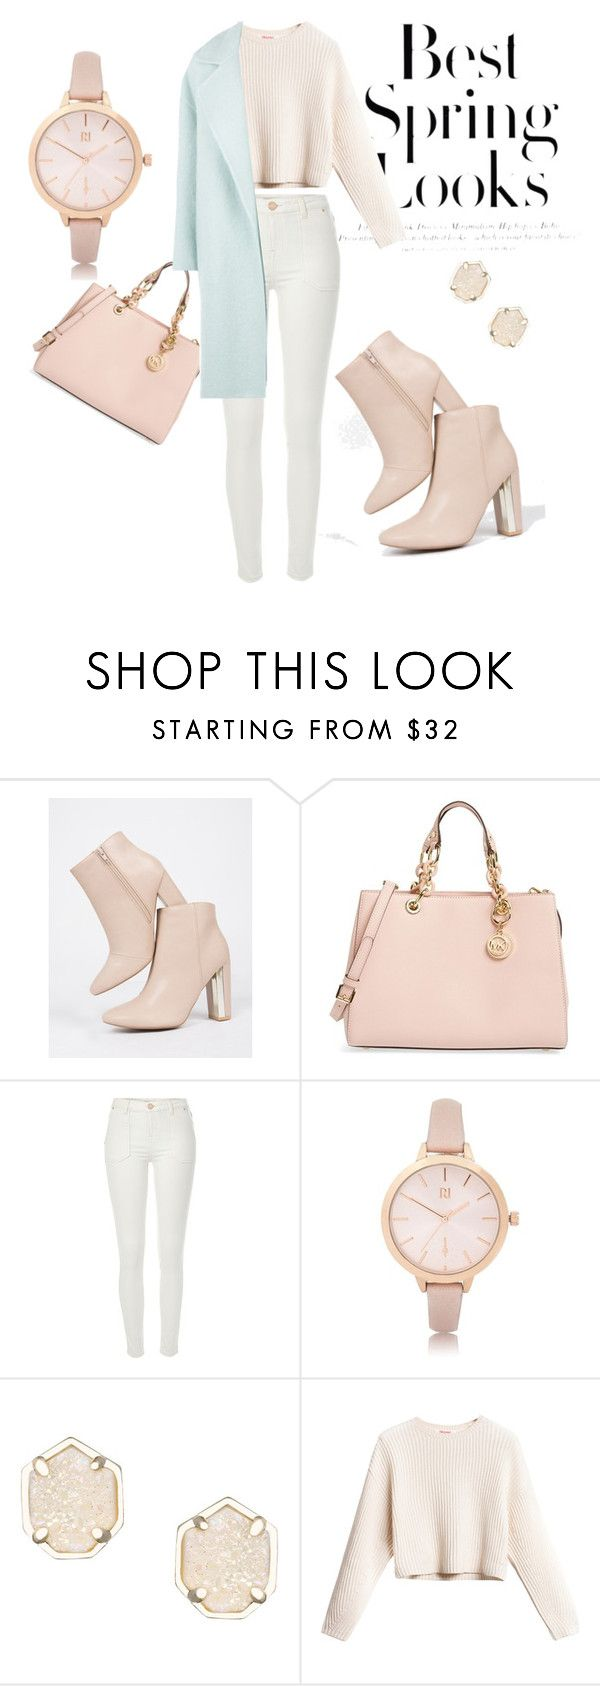 """Spring pastel look"" by terezahrnova ❤ liked on Polyvore featuring Qupid, MICHAEL Michael Kors, River Island, Kendra Scott, H&M and MaxMara"